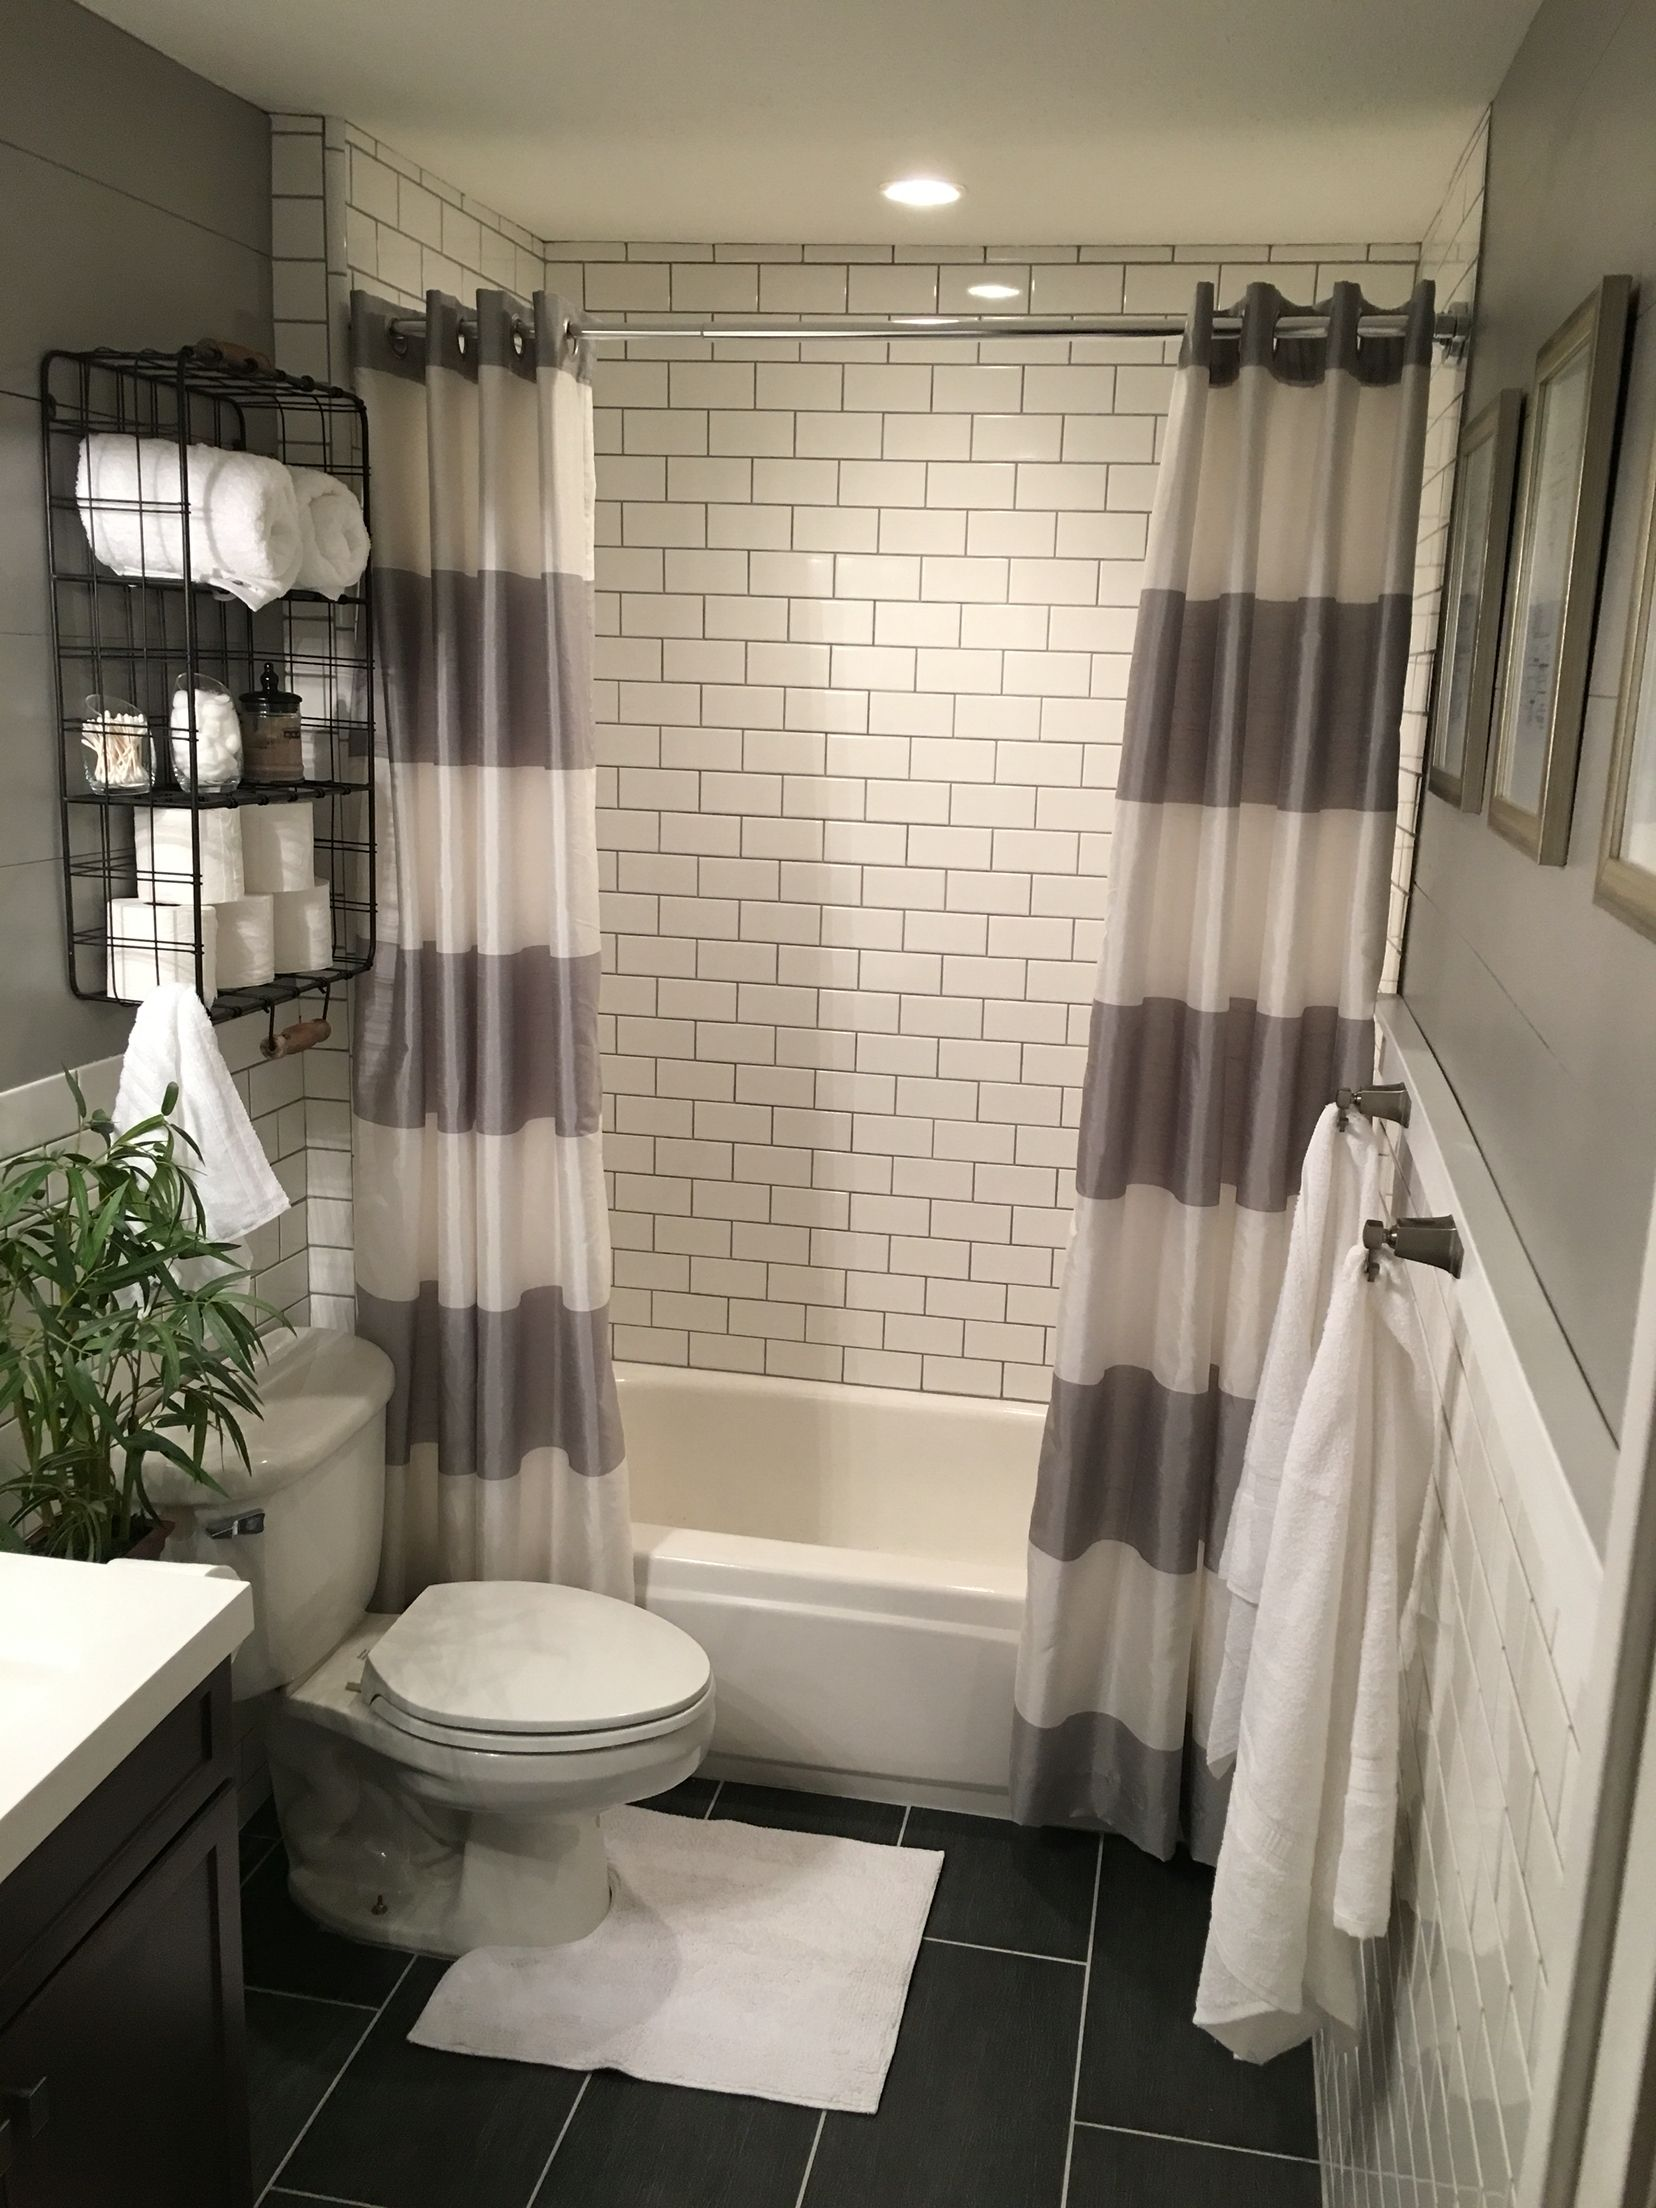 Our New Bathroom | Valley Forge In 2019 | Home Decor, Guest ...